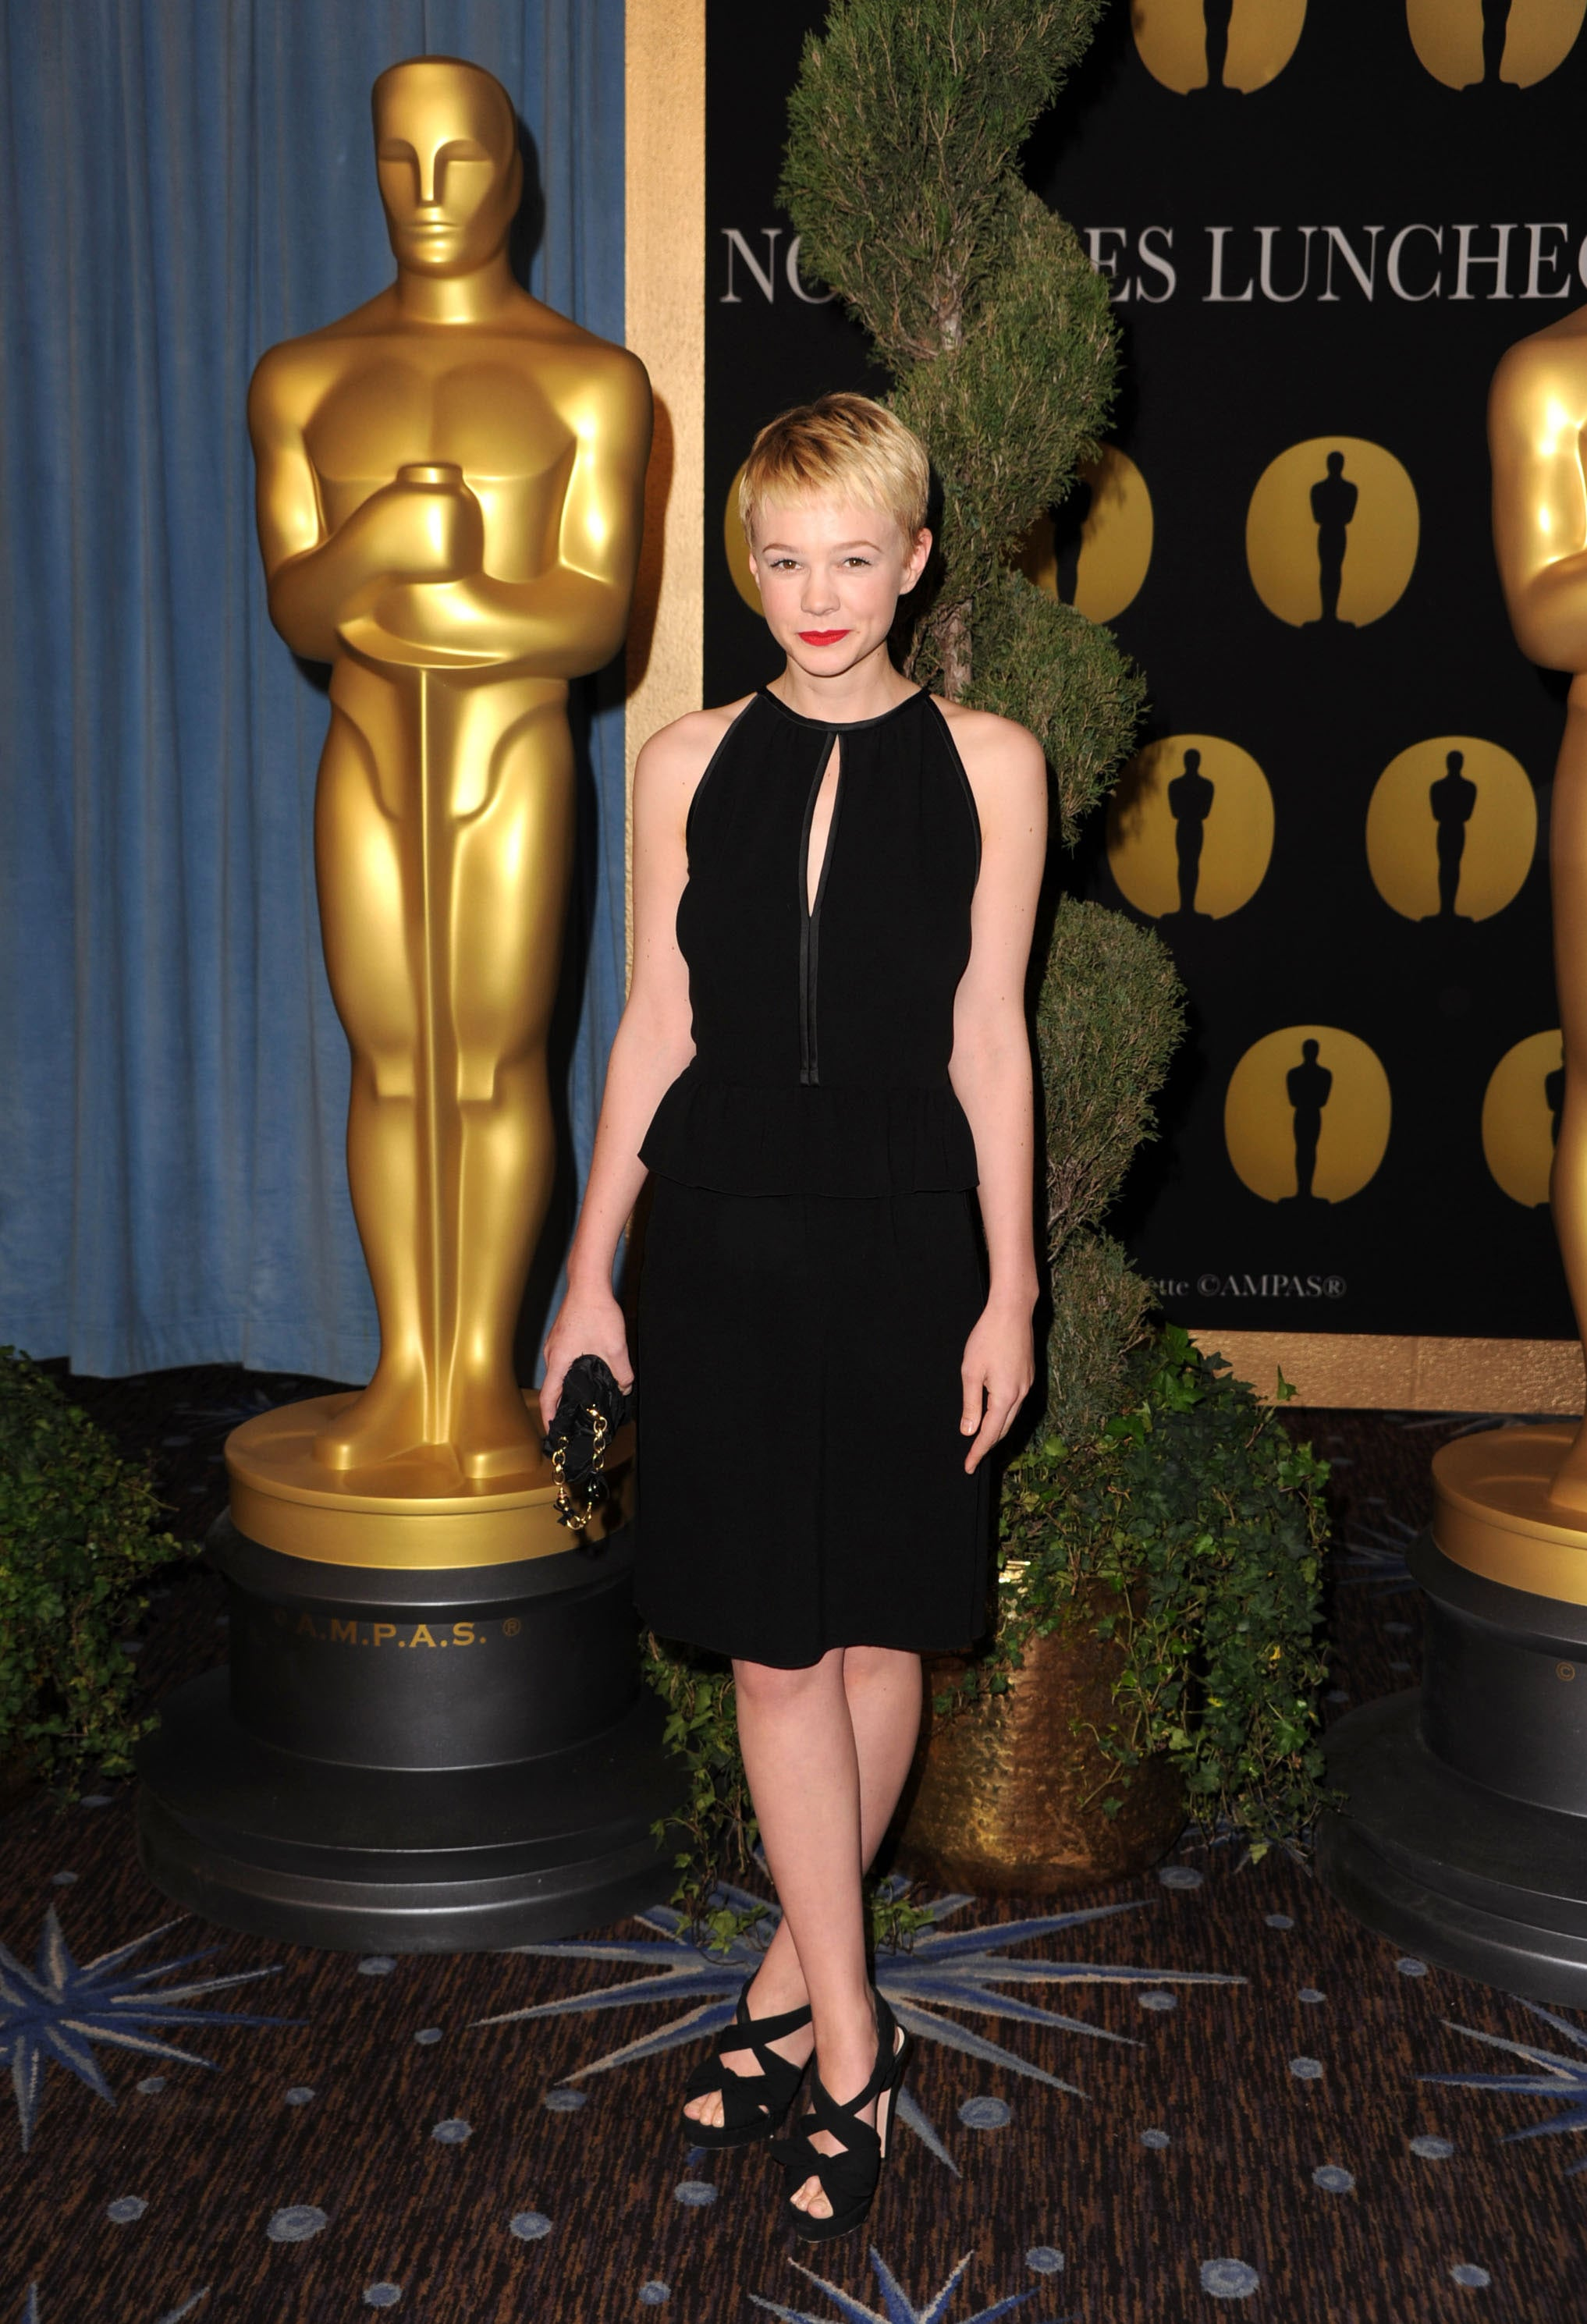 Carey Mulligan in a Little Black Dress at the 2009 Academy Awards Luncheon